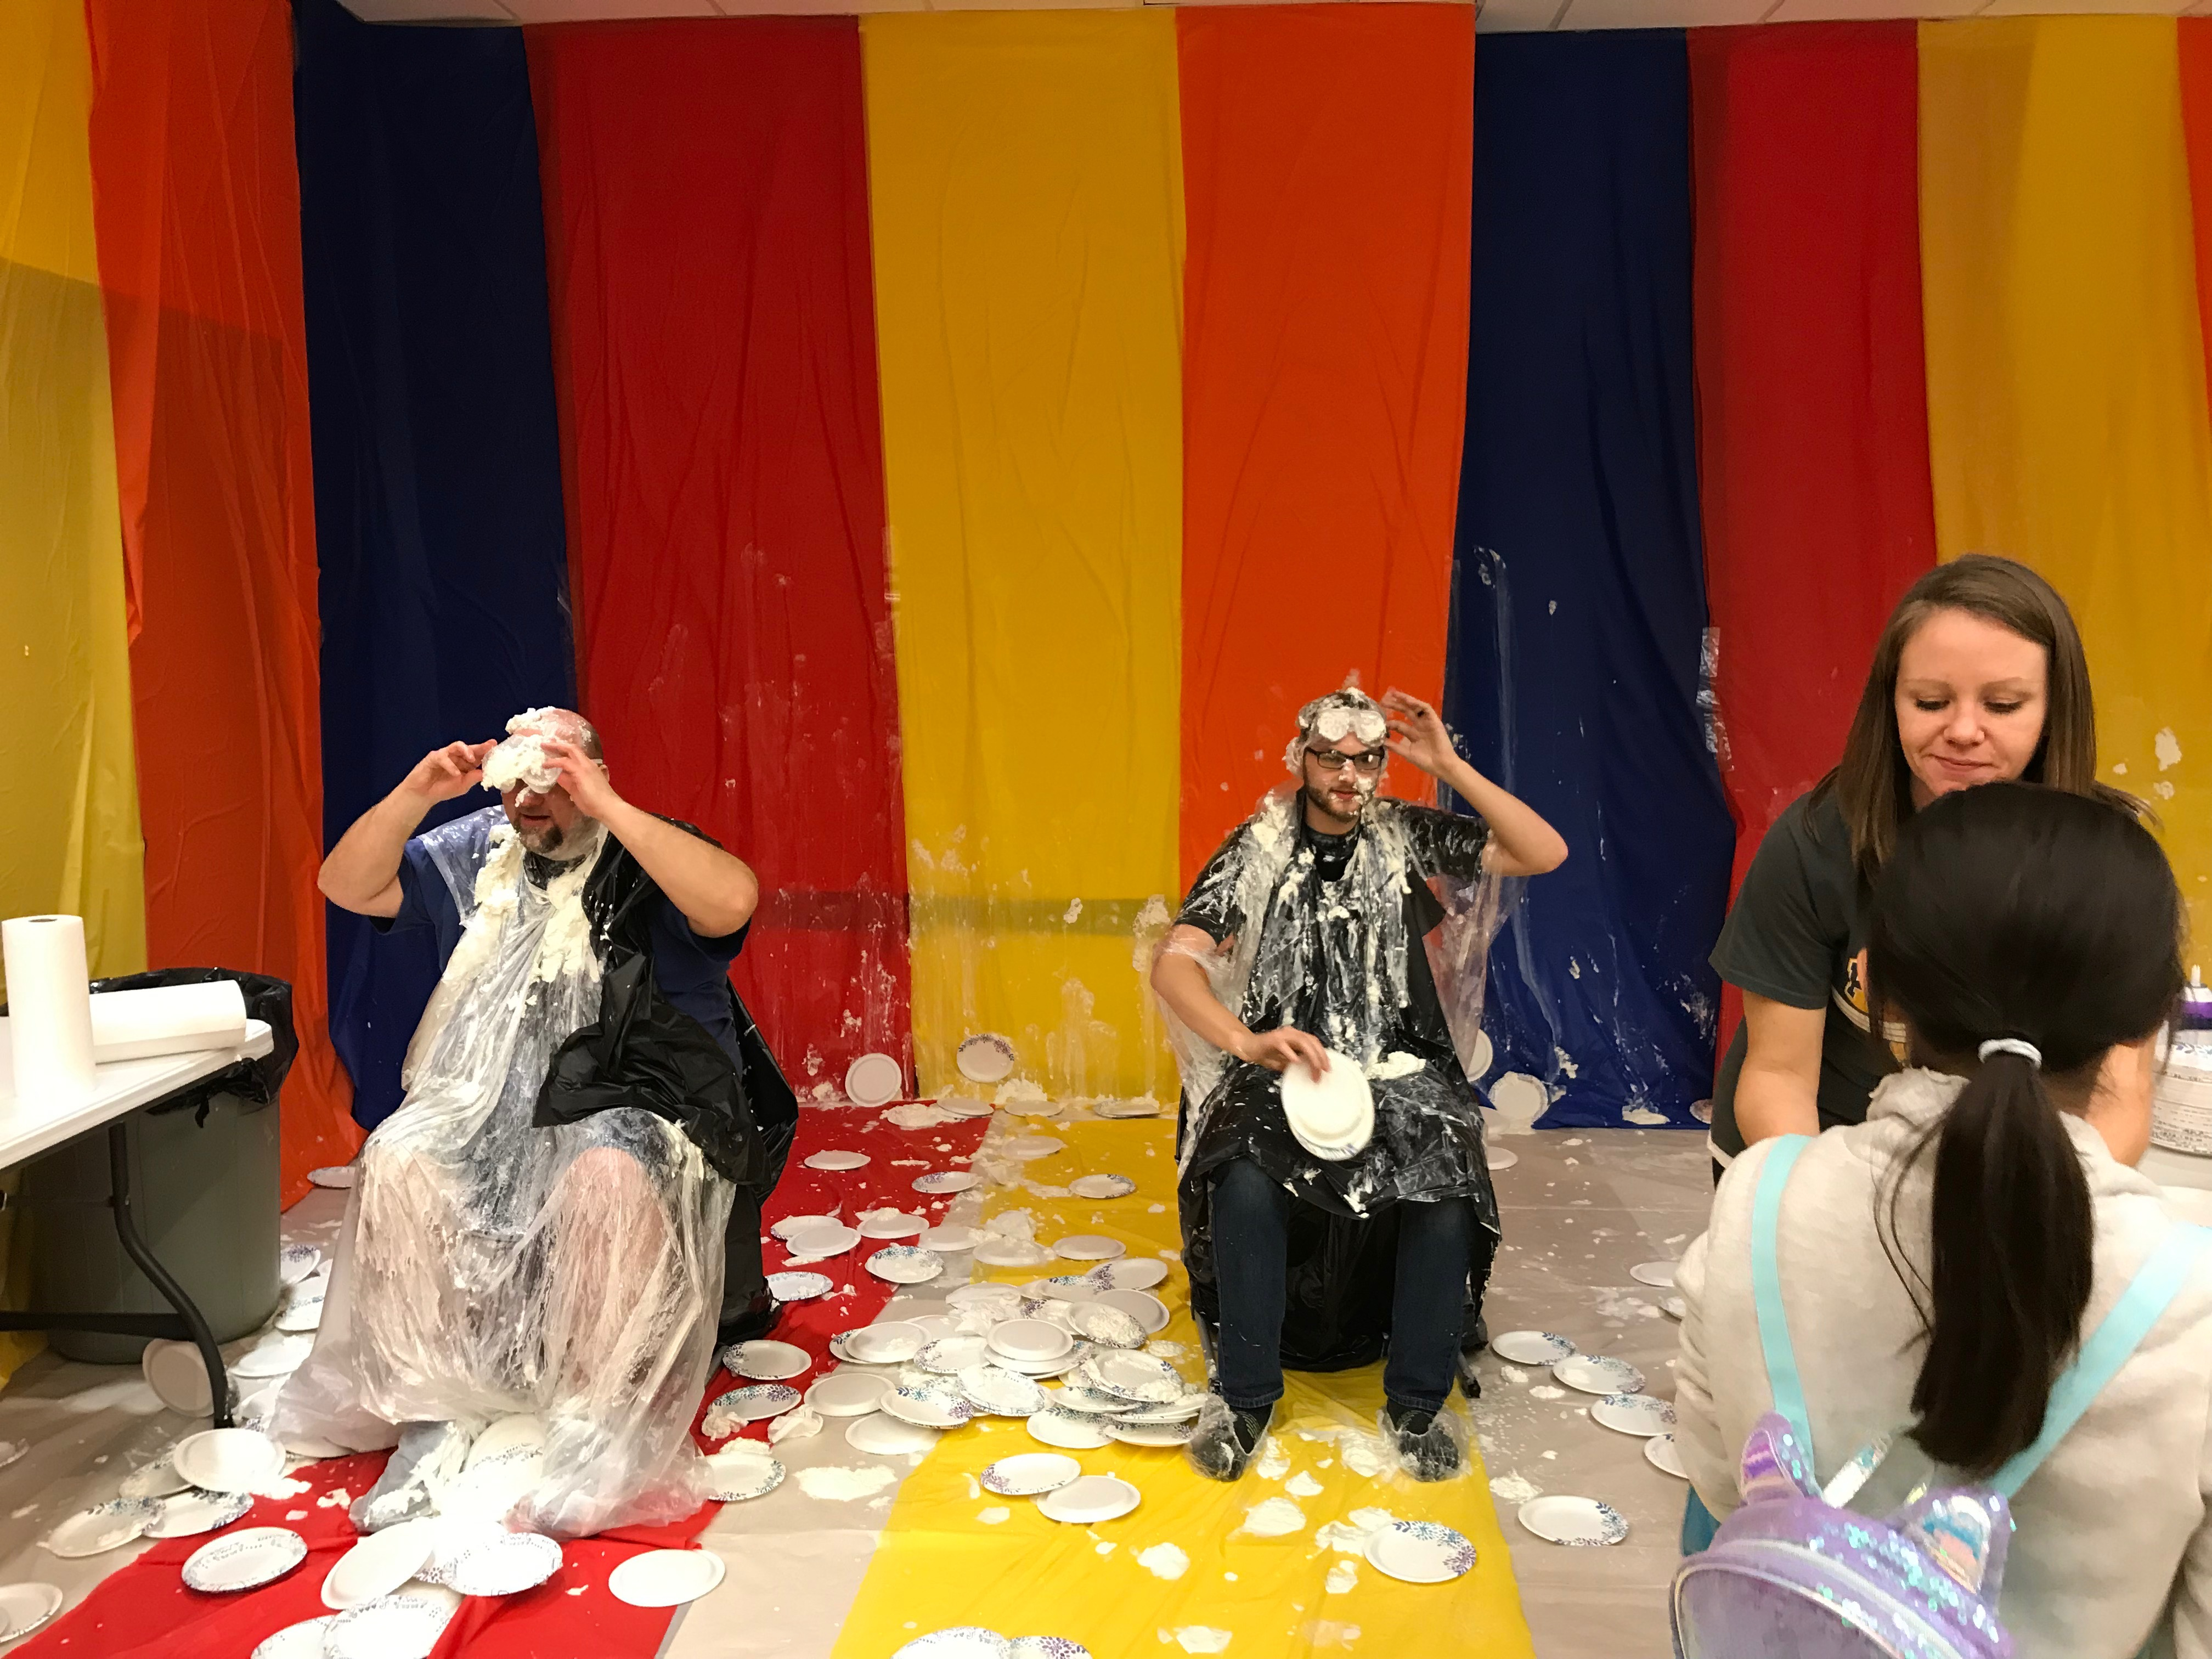 Brave staff members Mr. Karin, Mr. Michniewicz and Mrs. Cashen during the Fun Fair at Protsman Friday evening. They were great sports as they took pies to the face for charity!